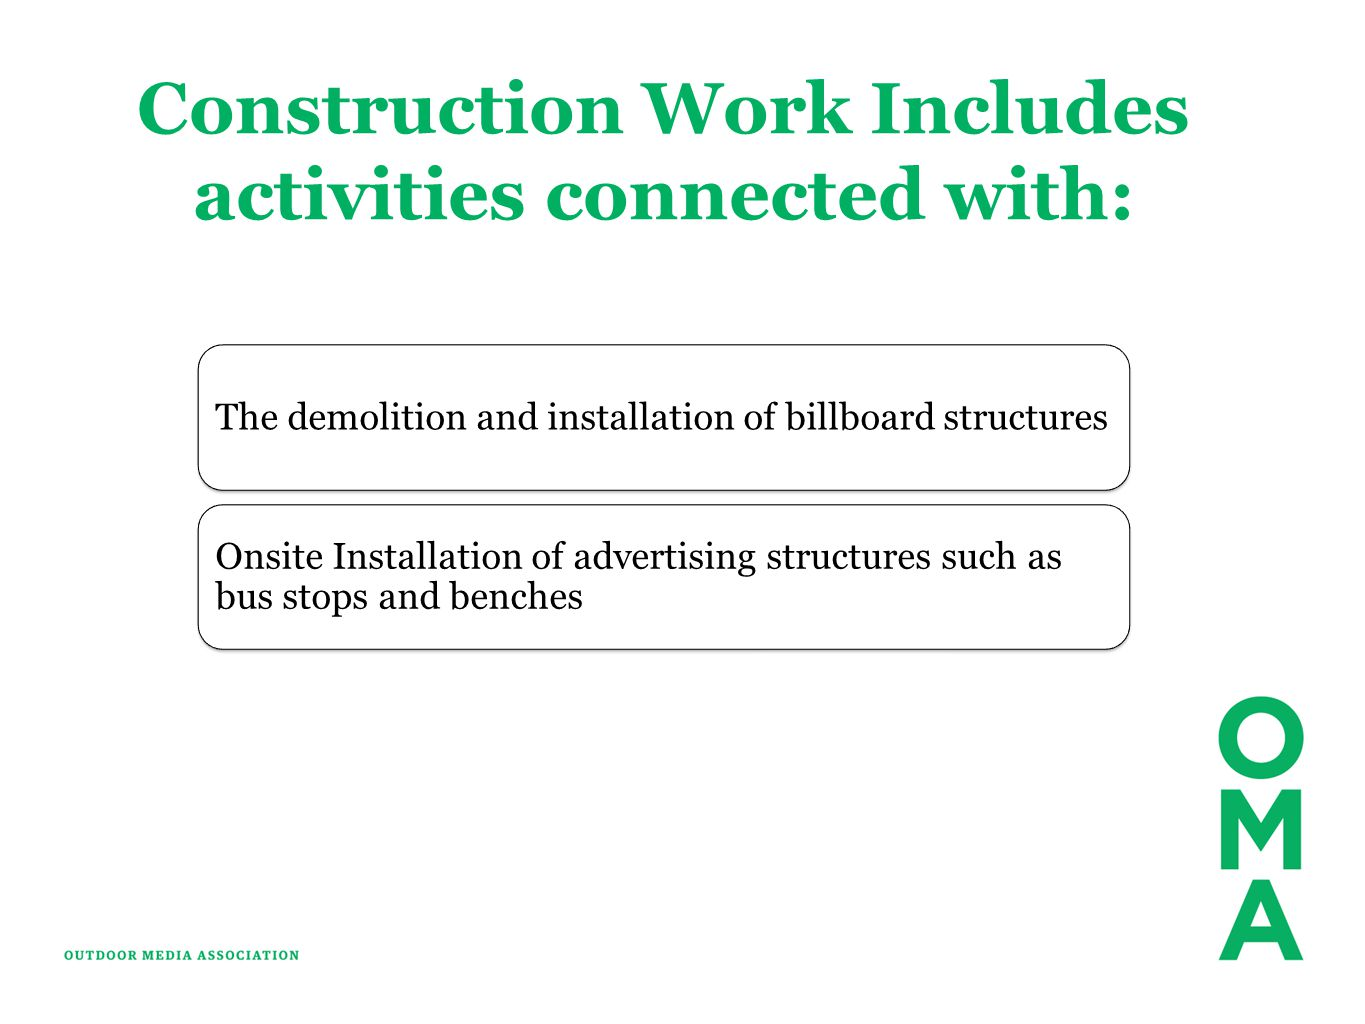 Construction Work Includes activities connected with: The demolition and installation of billboard structures Onsite Installation of advertising struc